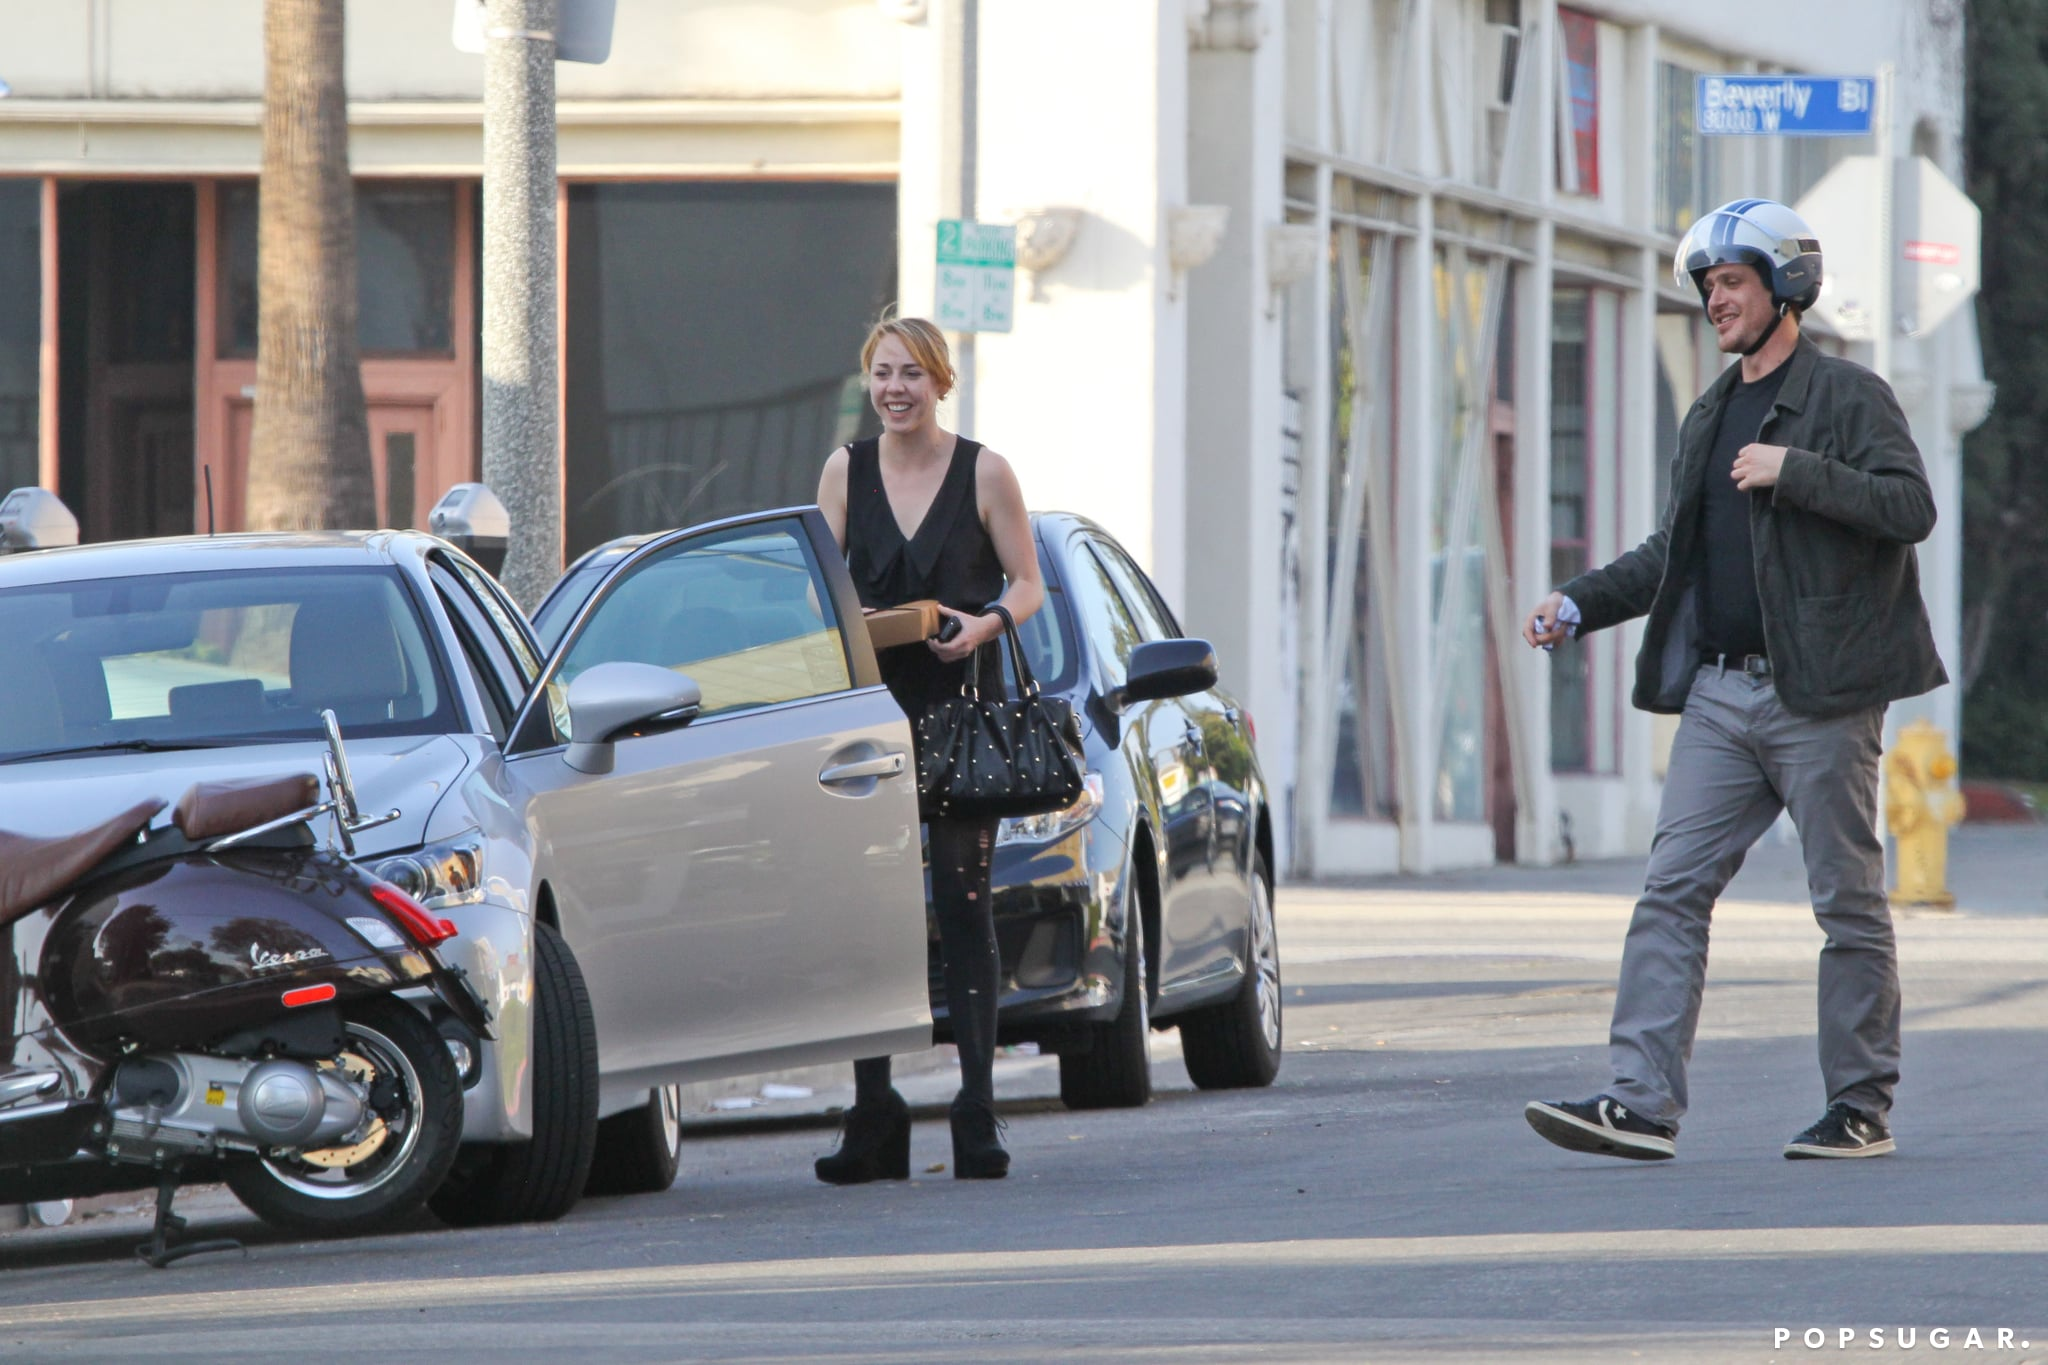 Jason Segel and his friend left the restaurant in LA together.